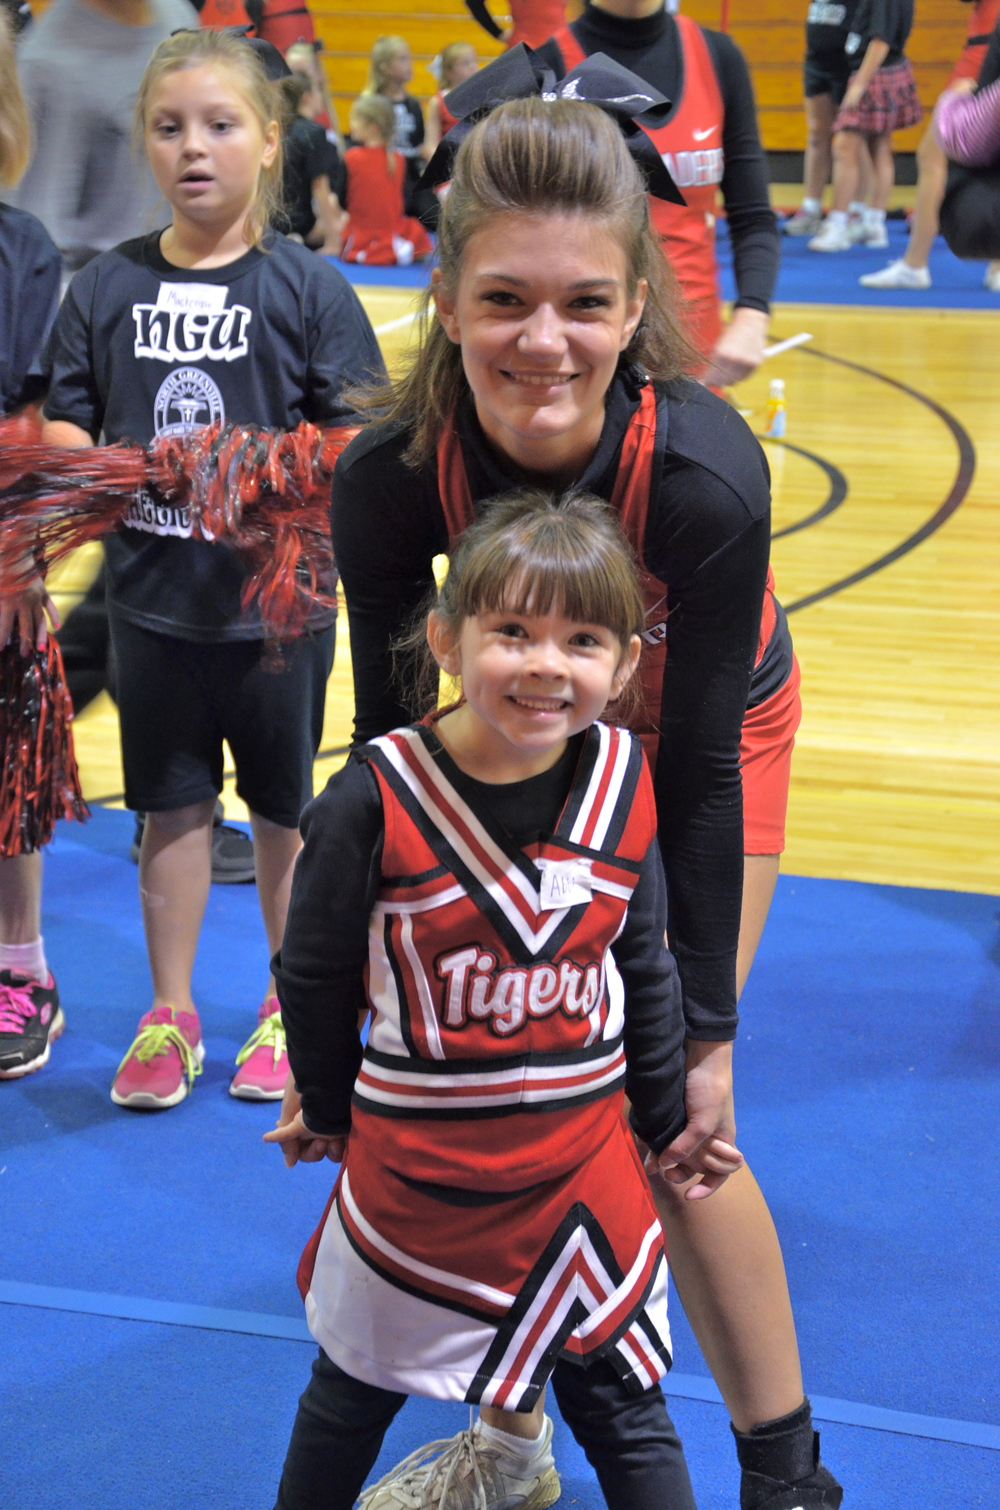 Cheerleading buddies pose for the camera before getting to work at the NGU cheer camp October 4.